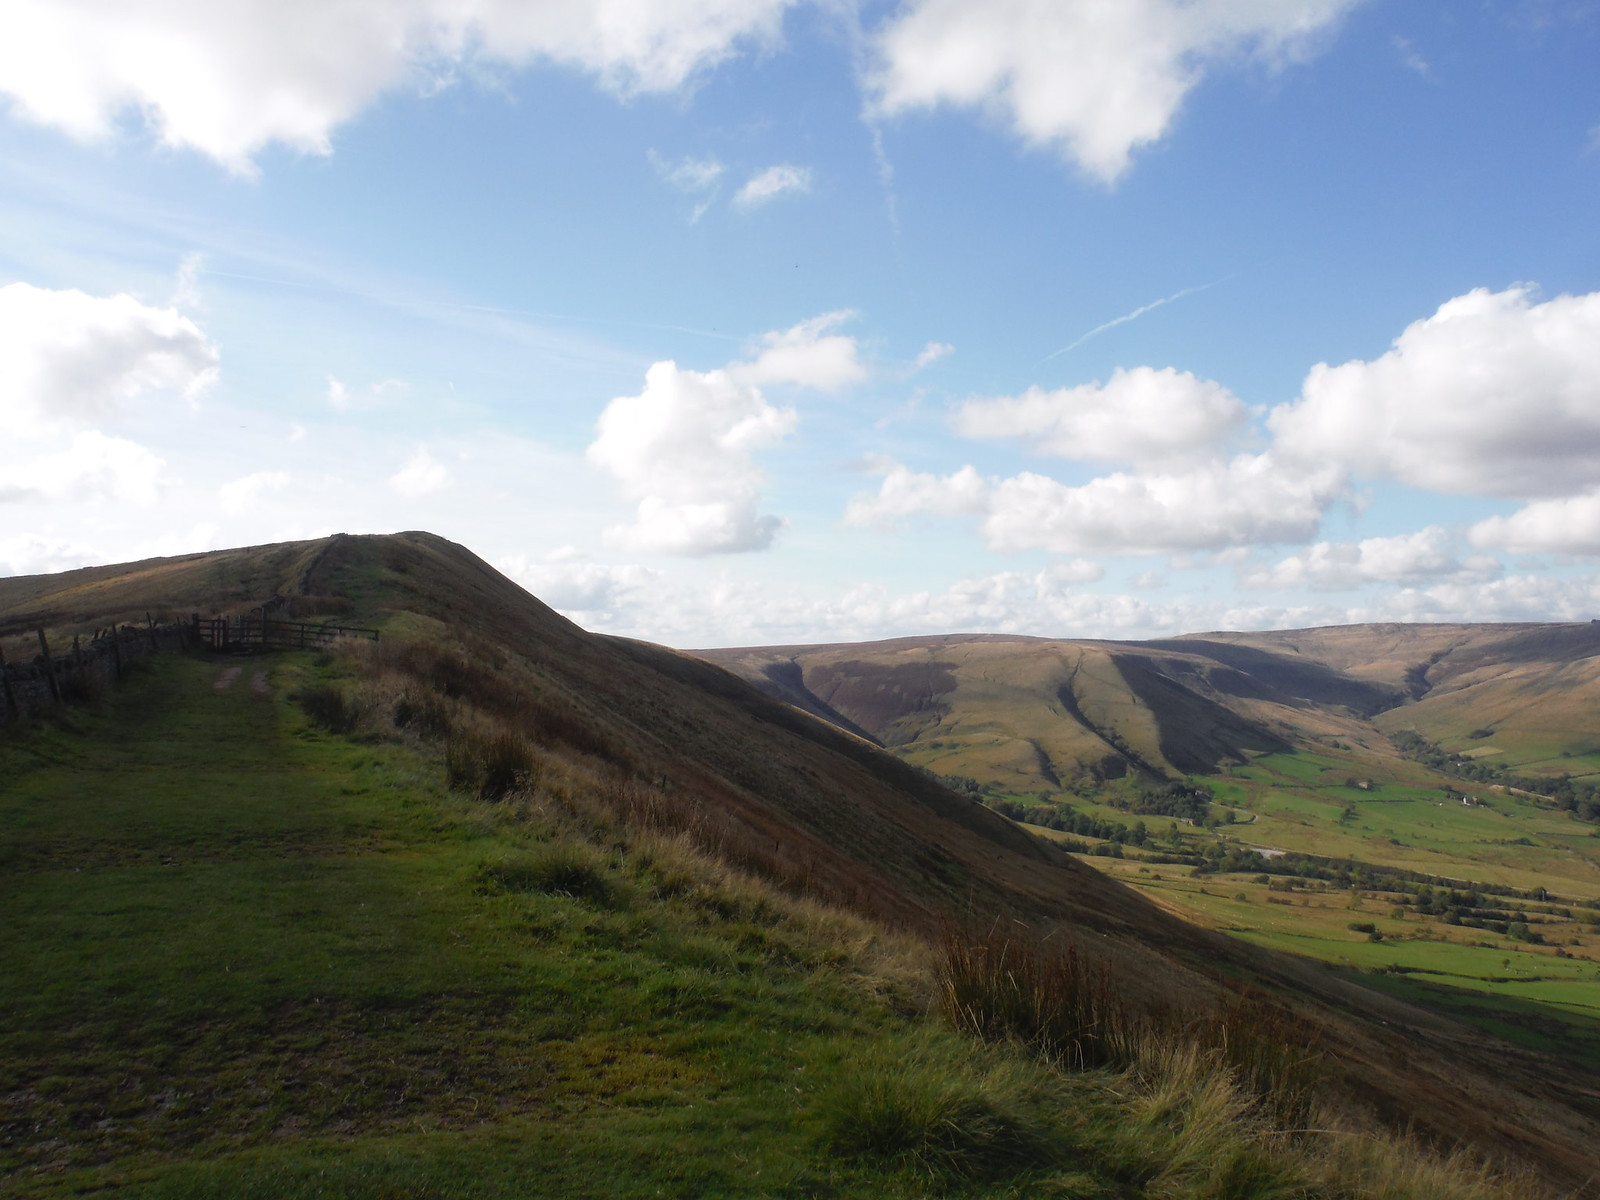 Lord's Seat and Edale Head SWC Walk 302 - Bamford to Edale (via Win Hill and Great Ridge)